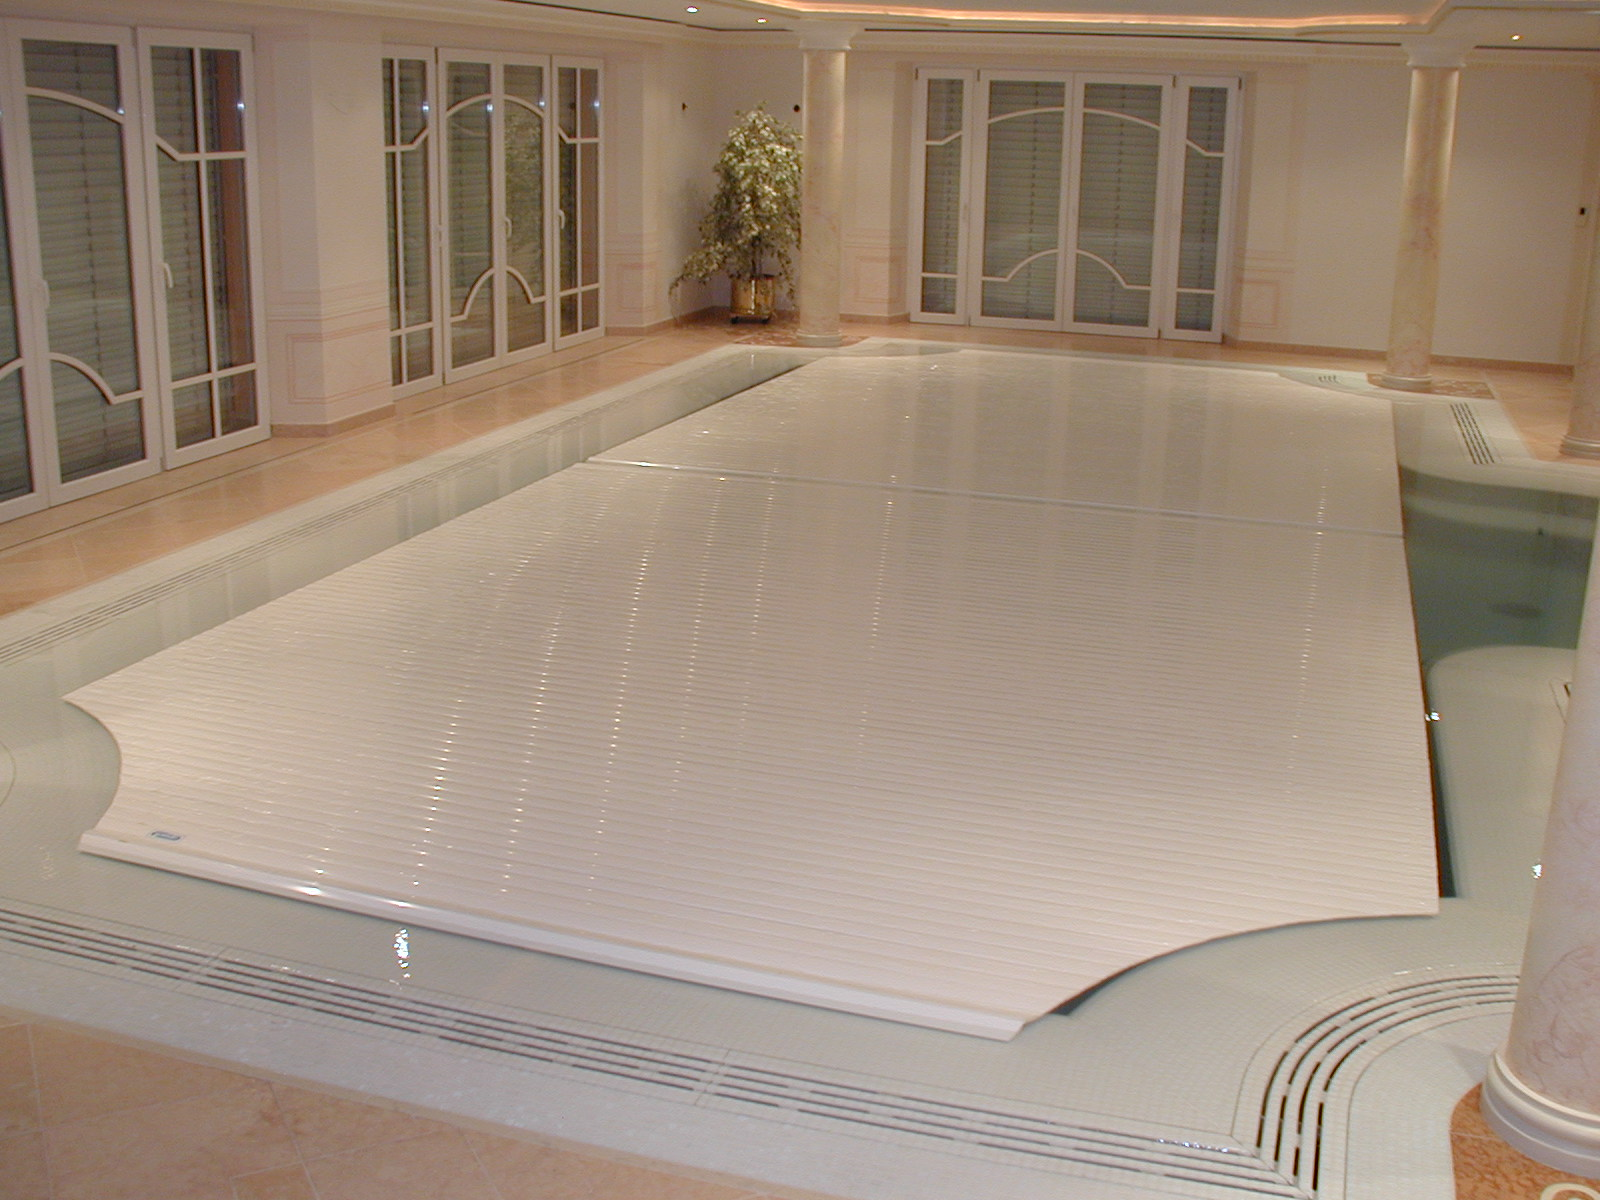 Indoor automatic pool cover covertech couture outdoor for Garden pool with cover